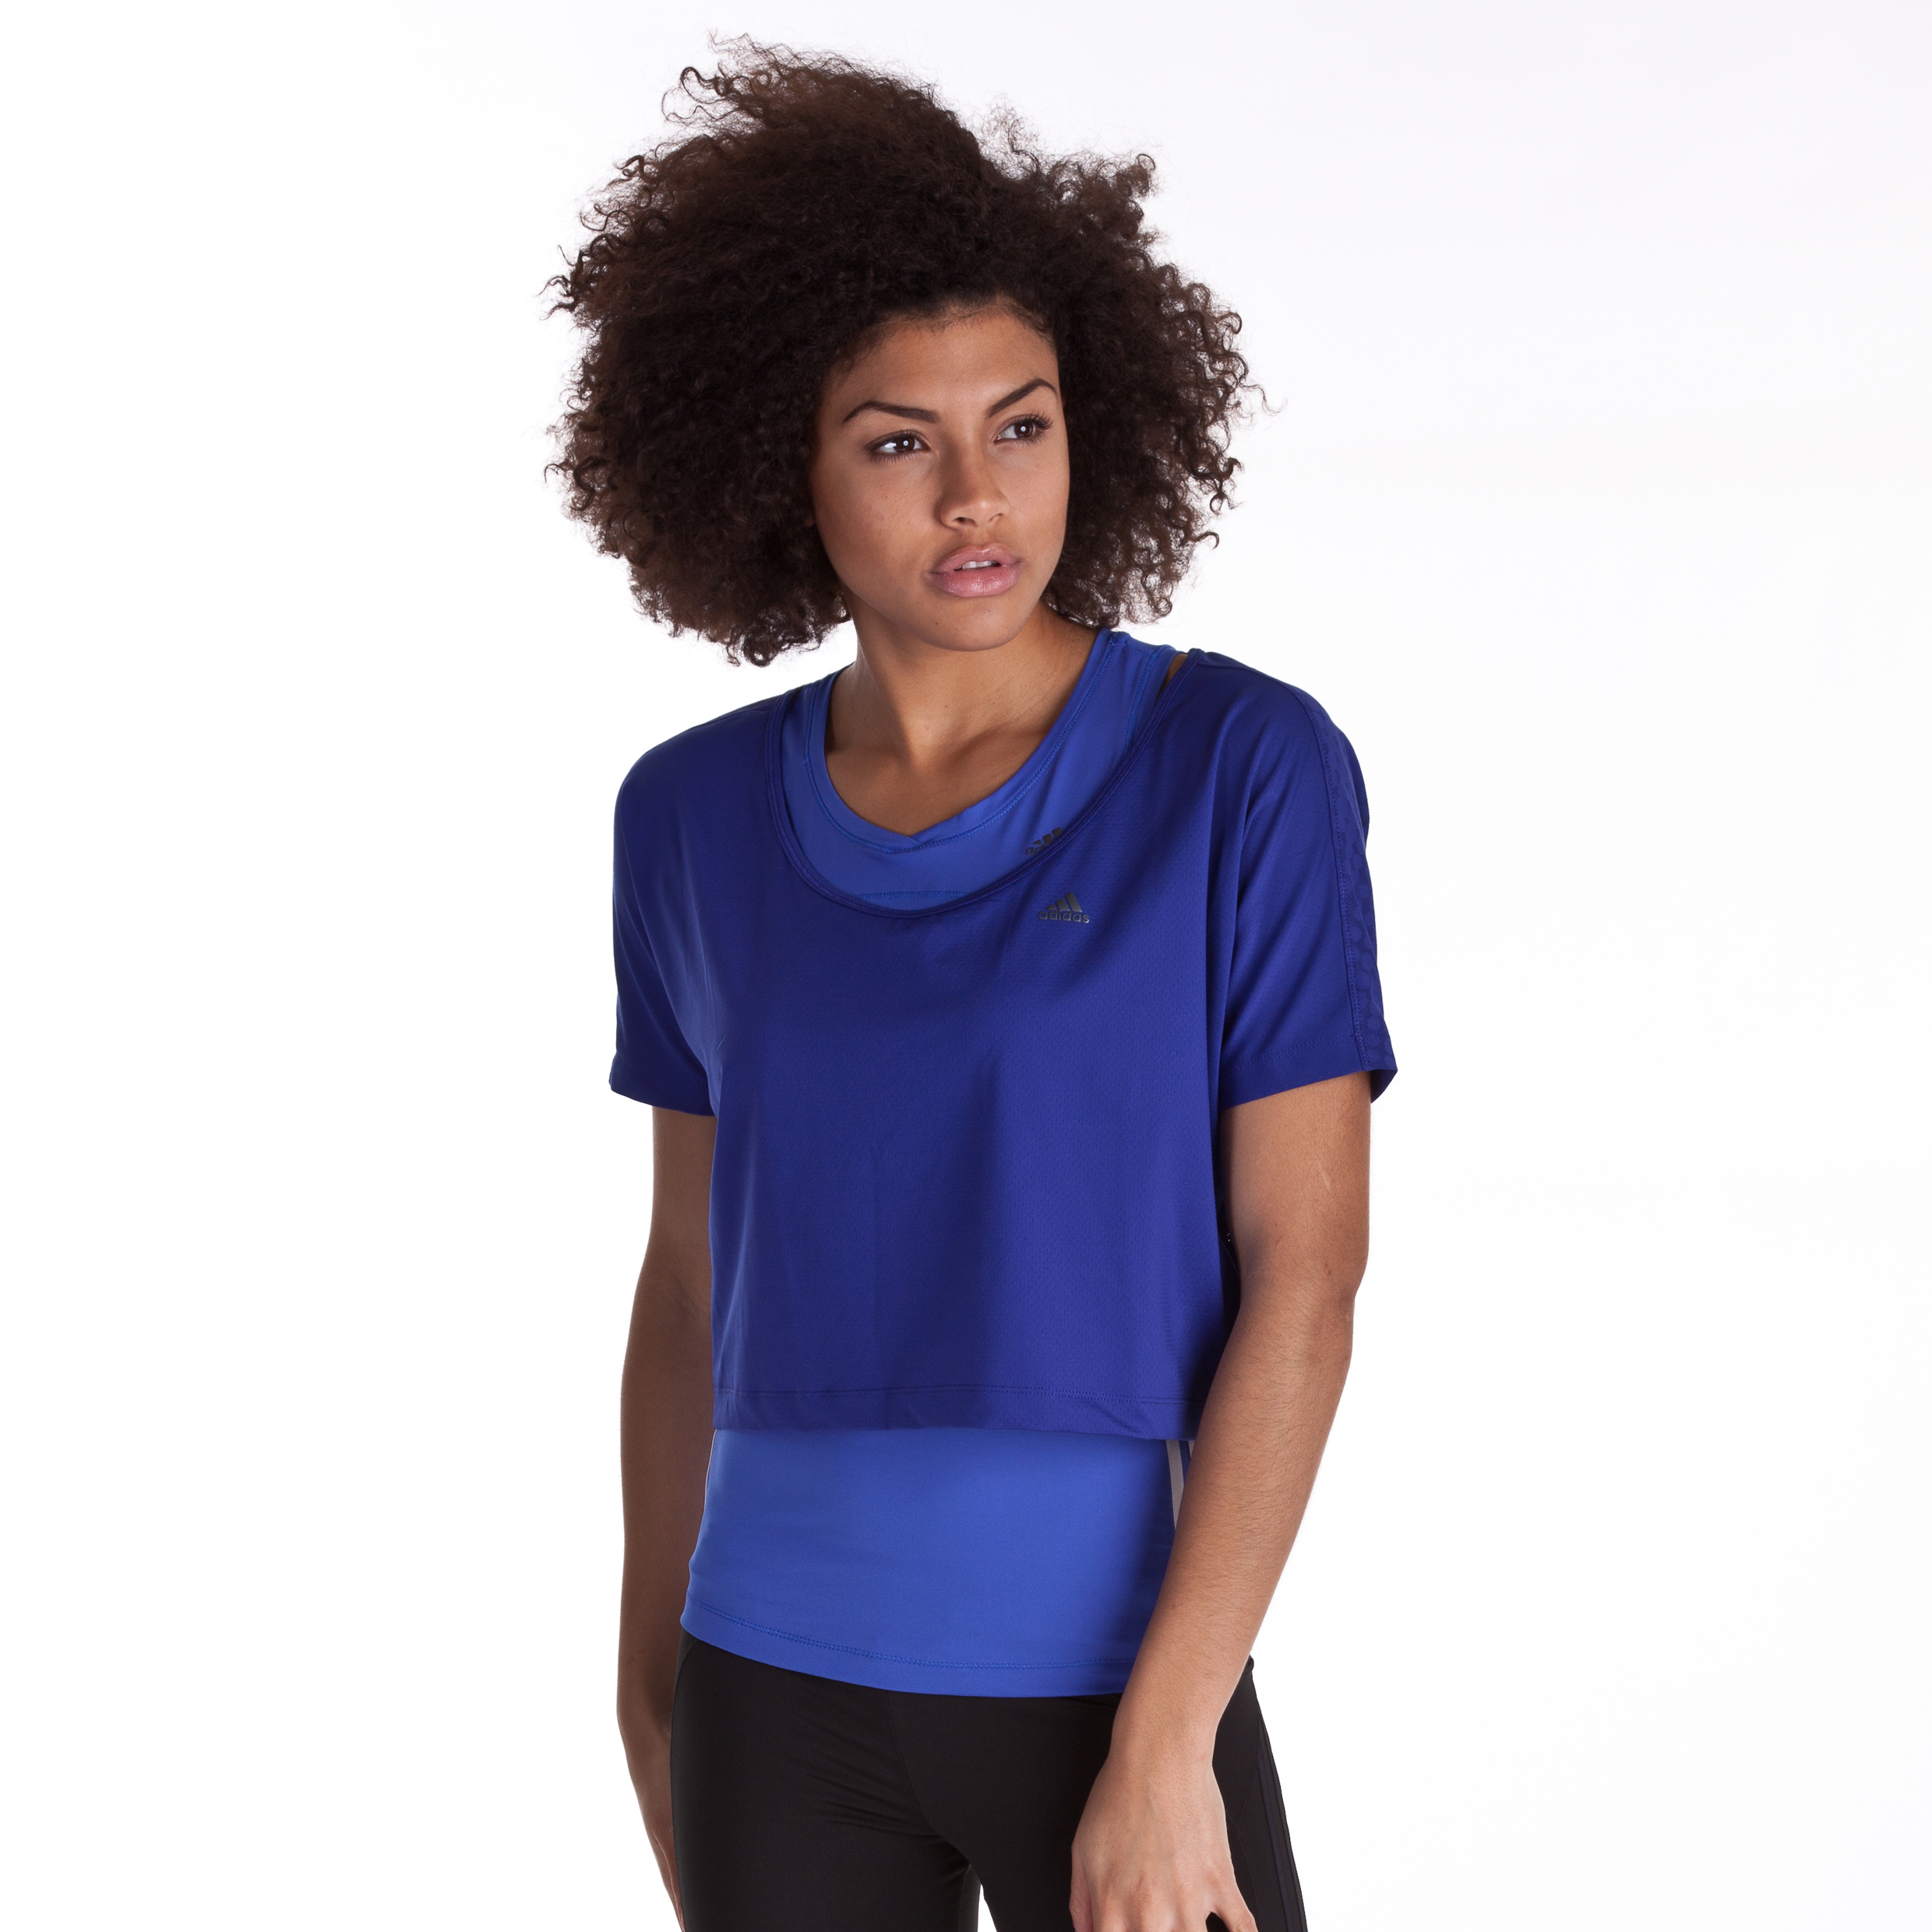 Adidas CLIMACOOL Training Box Tee - Ink Blue - Womens